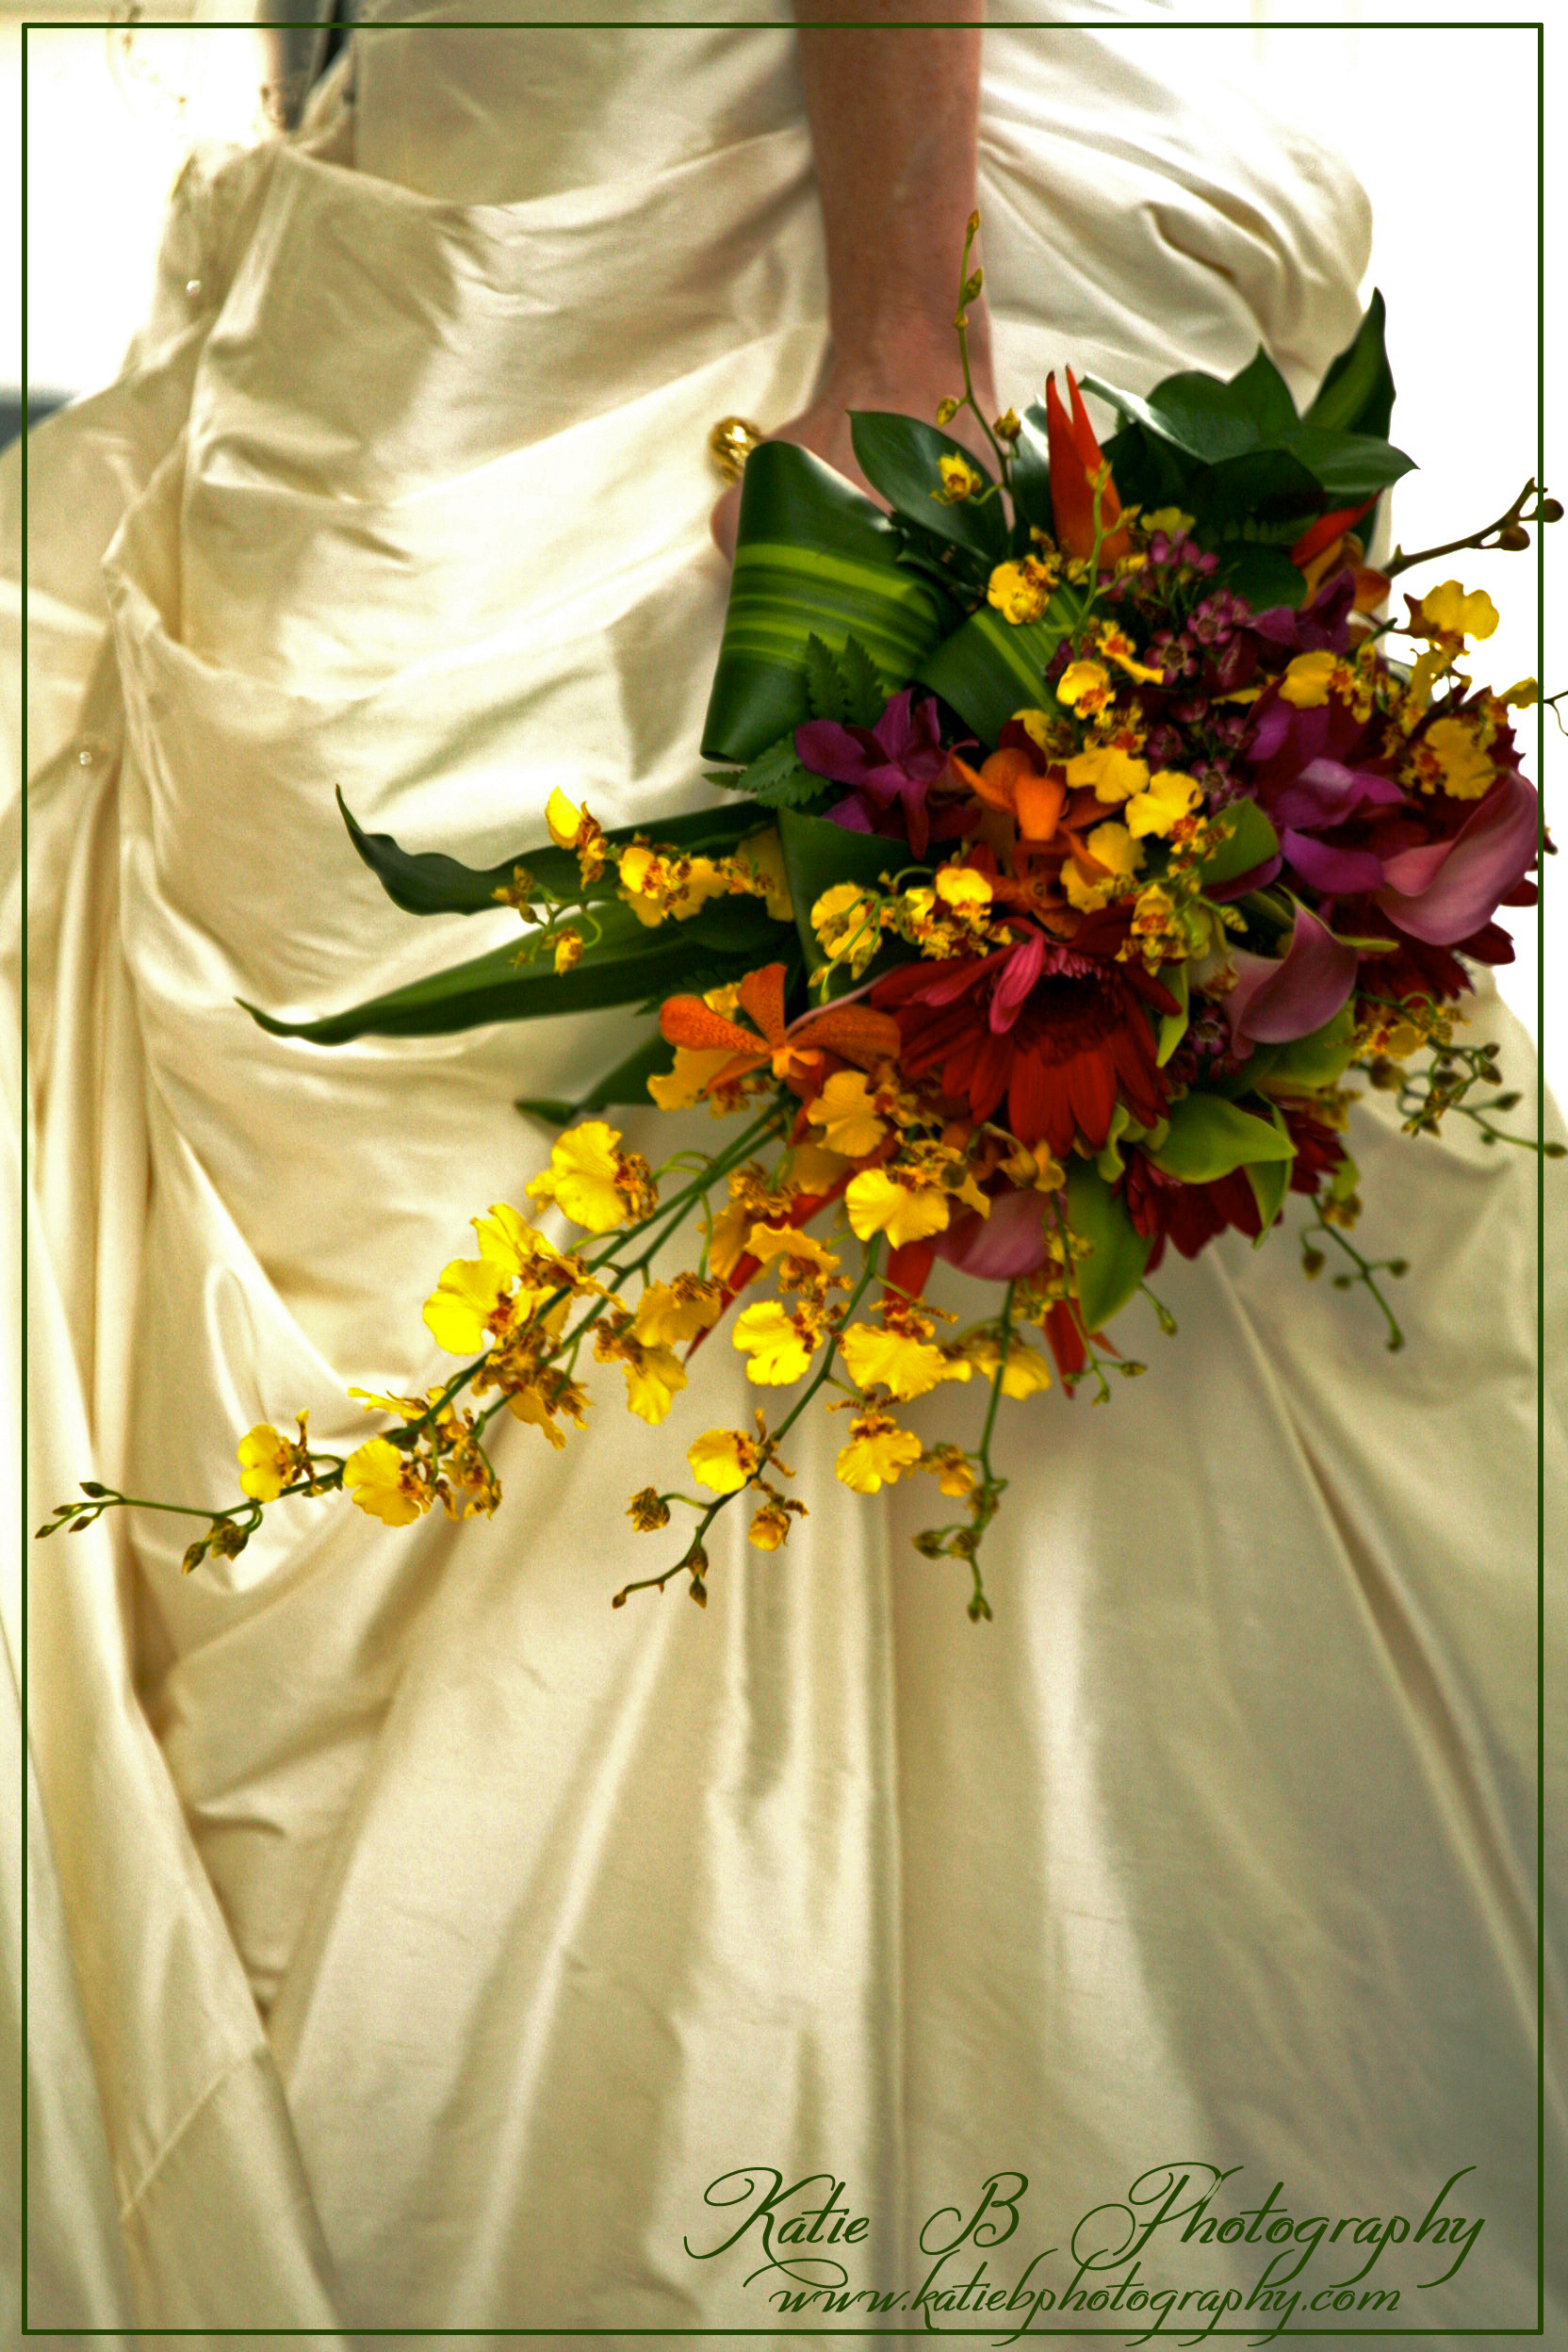 Flowers & Decor, orange, pink, purple, green, Bride Bouquets, Bride, Flowers, Bouquet, Katie b photography